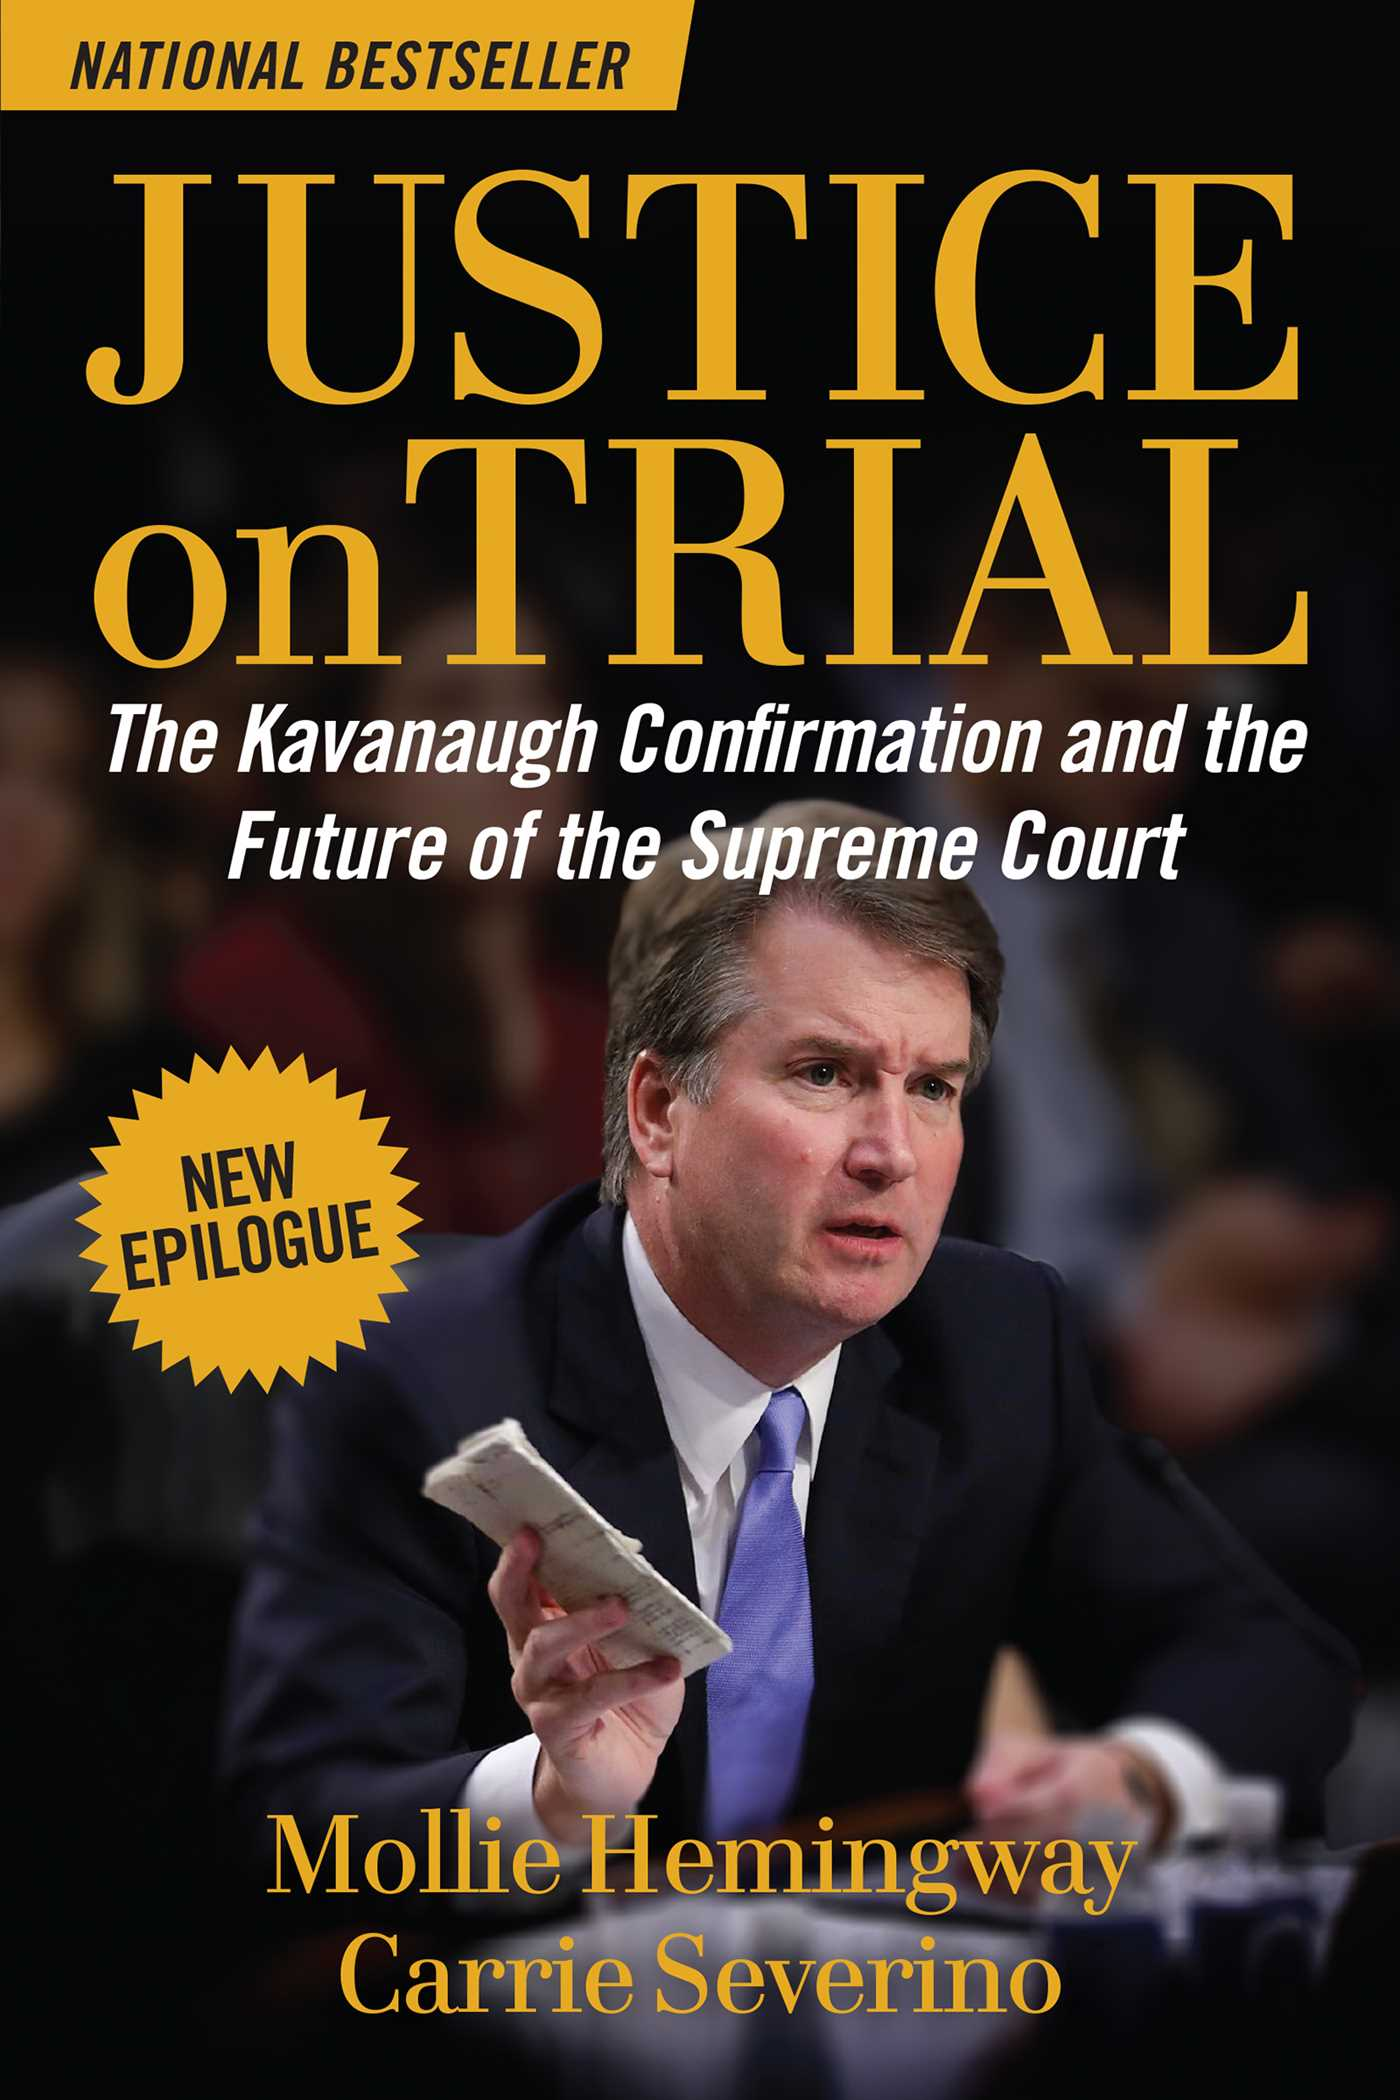 Justice on Trial The Kavanaugh Confirmation and the Future of the Supreme Court